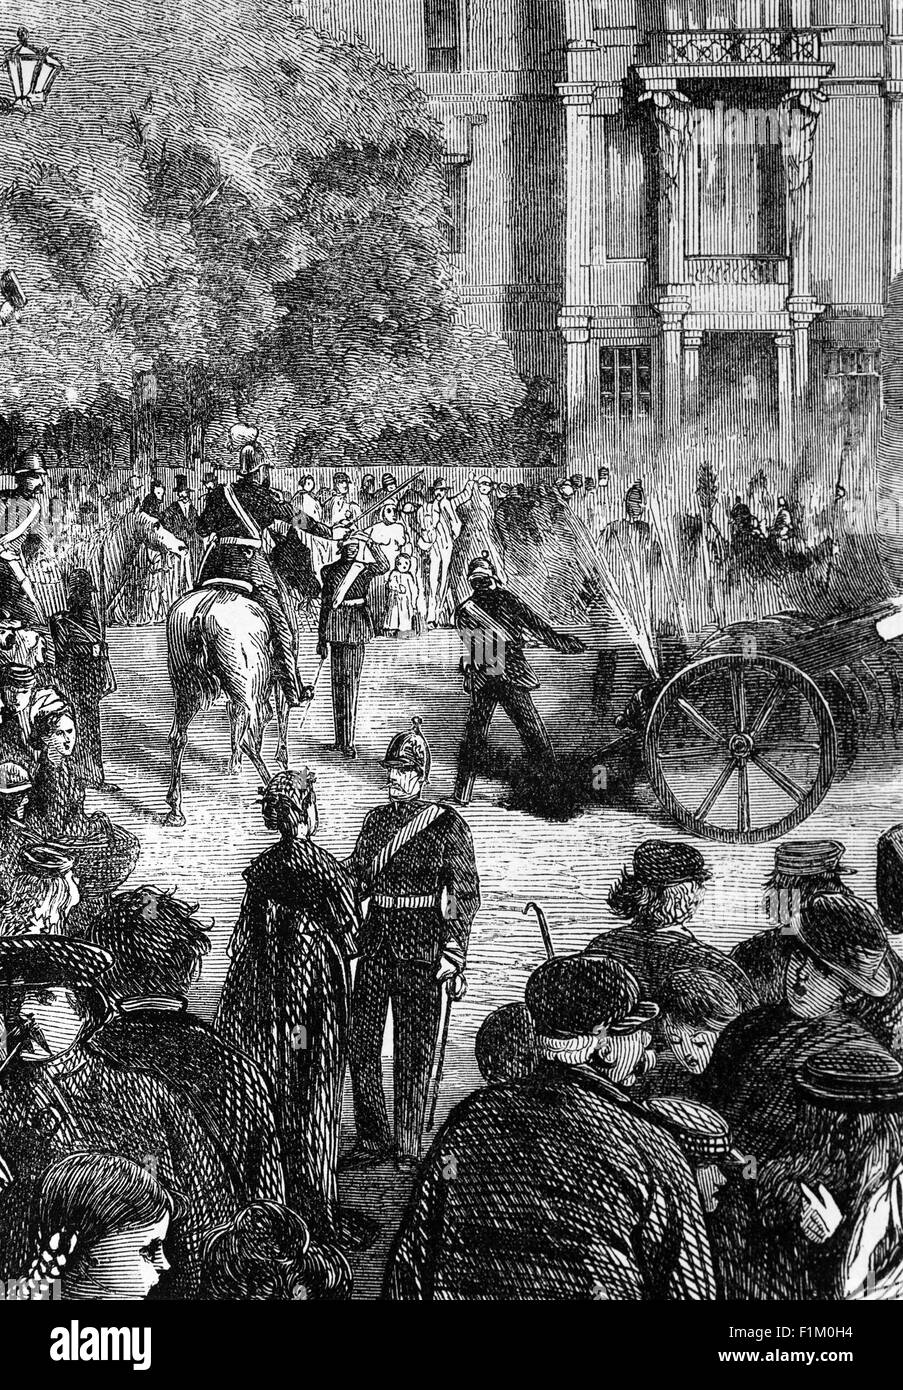 Whalers in action wood engraving published in 1855 stock illustration - Firing Cannon Salvos In Berlin Germany During The Franco German War Of 1870